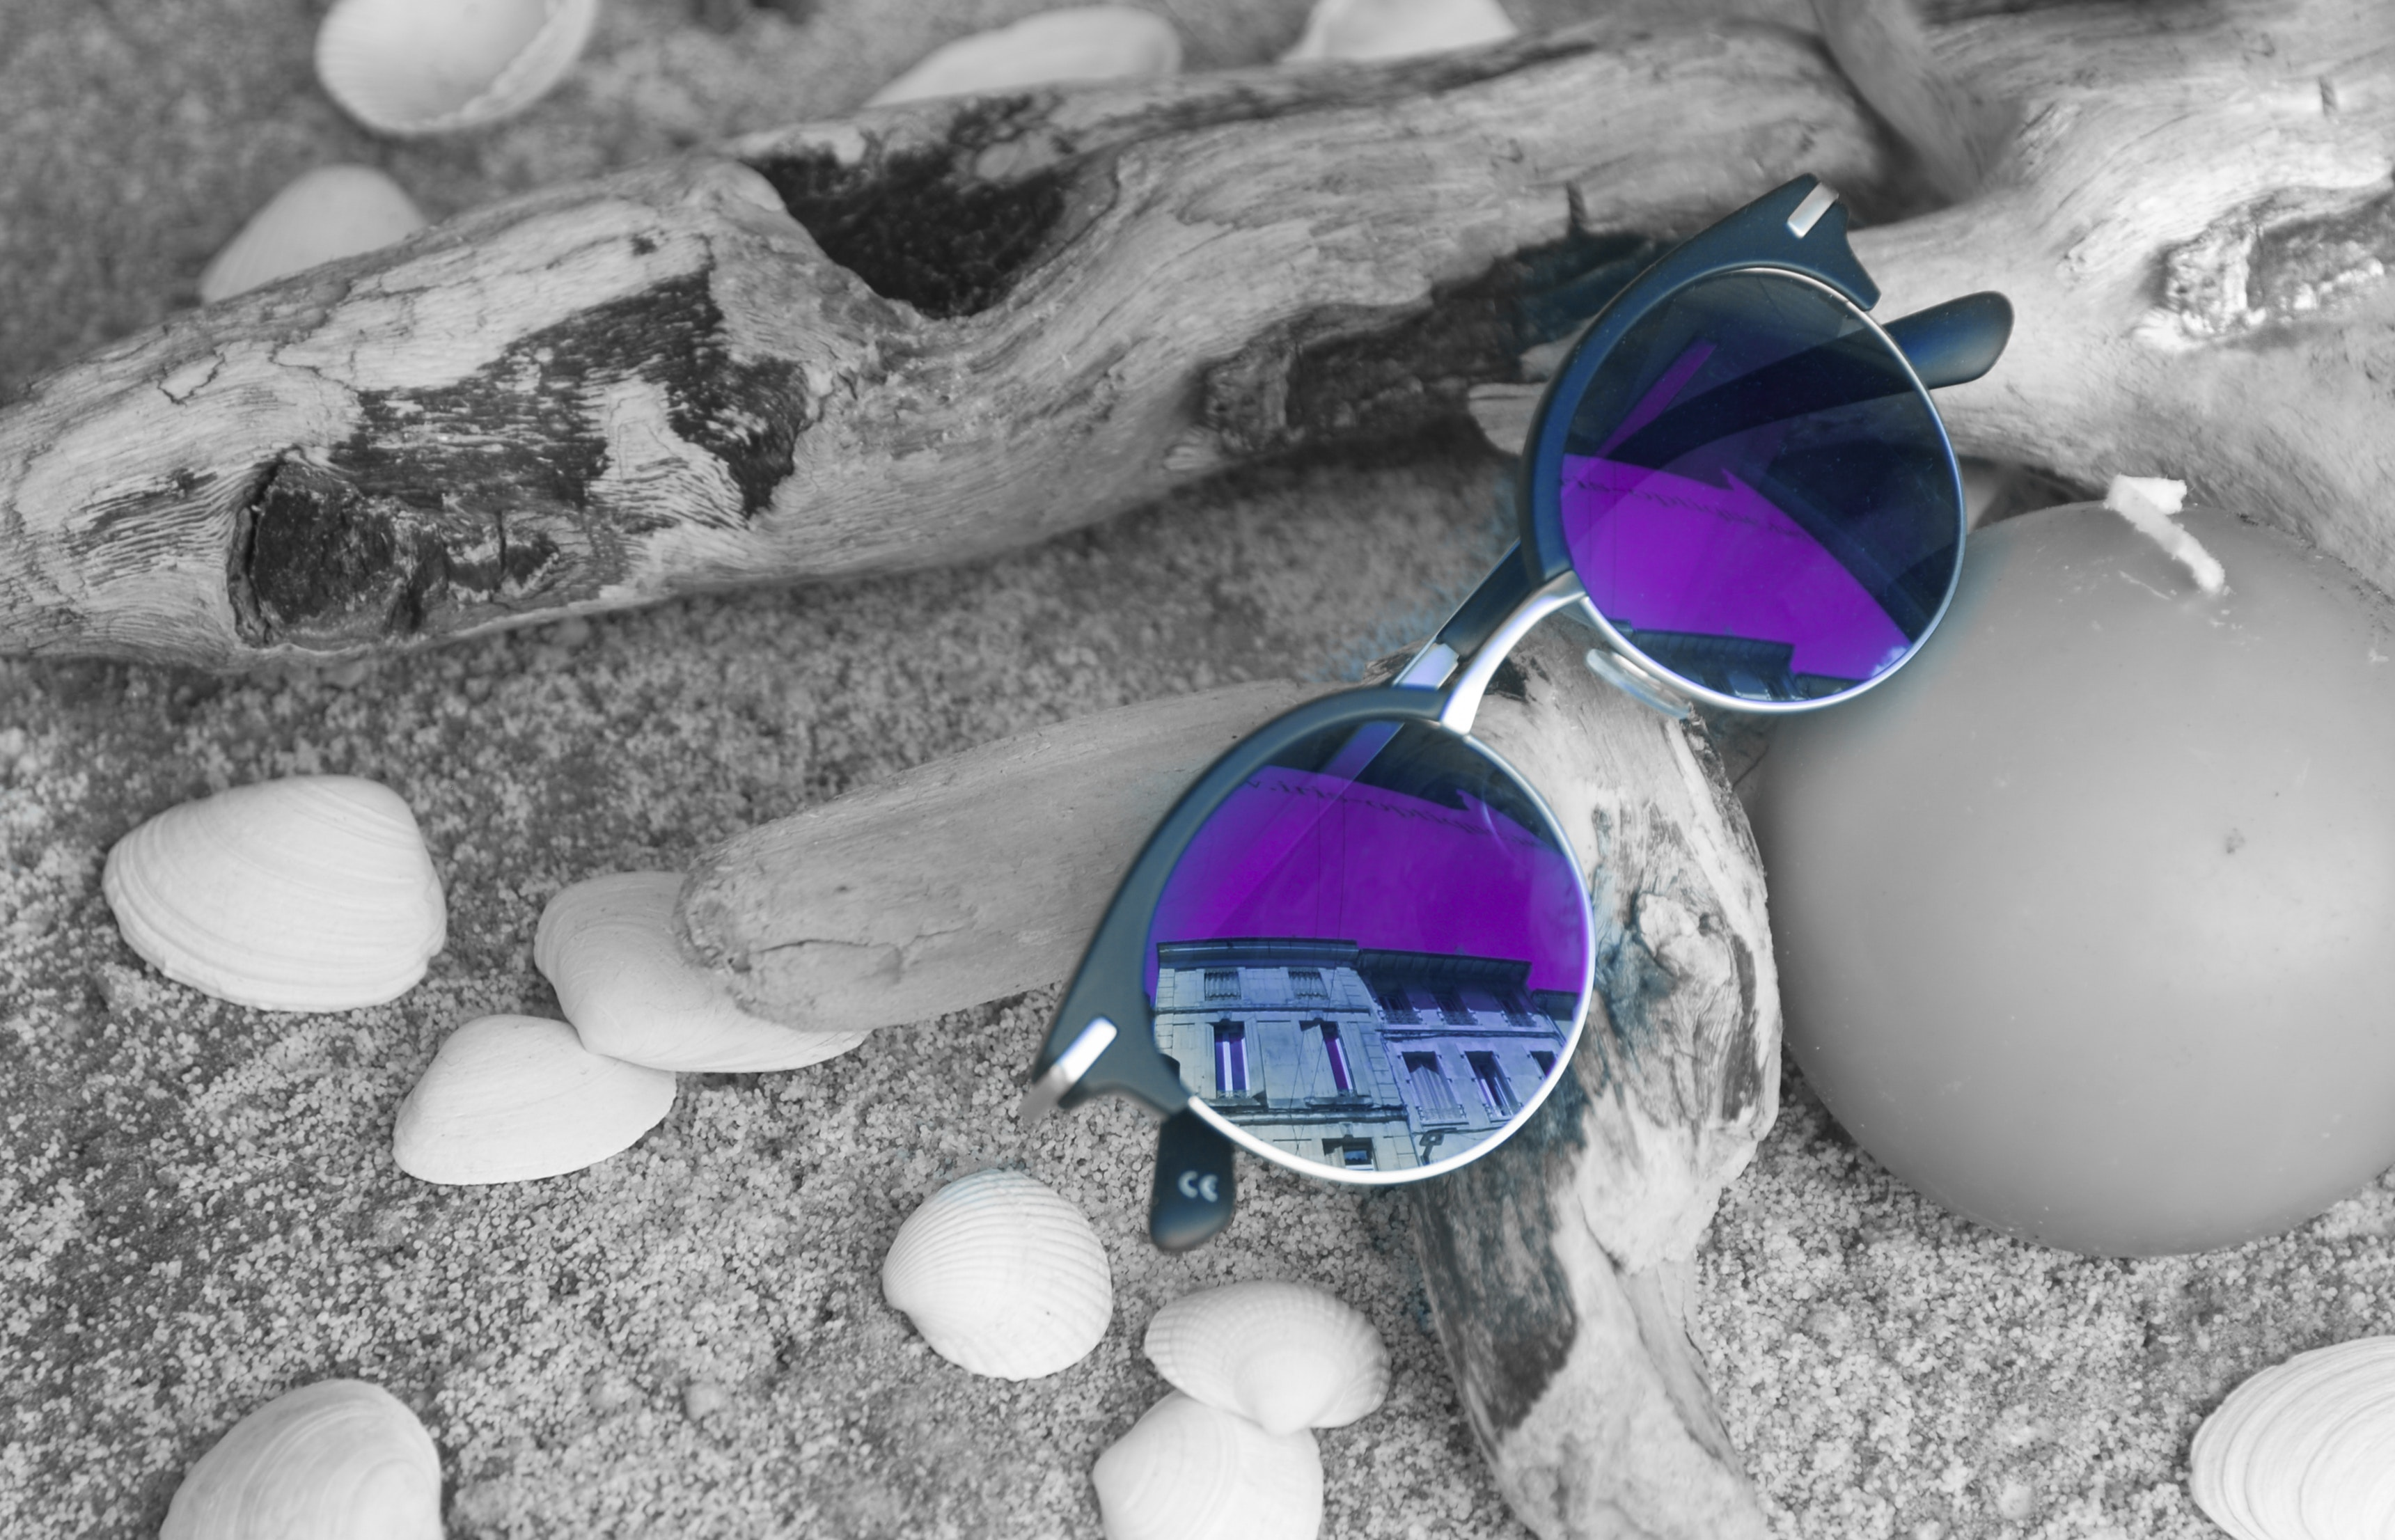 Neo chrome sunglasses with silver and black frame on brown firewood photo